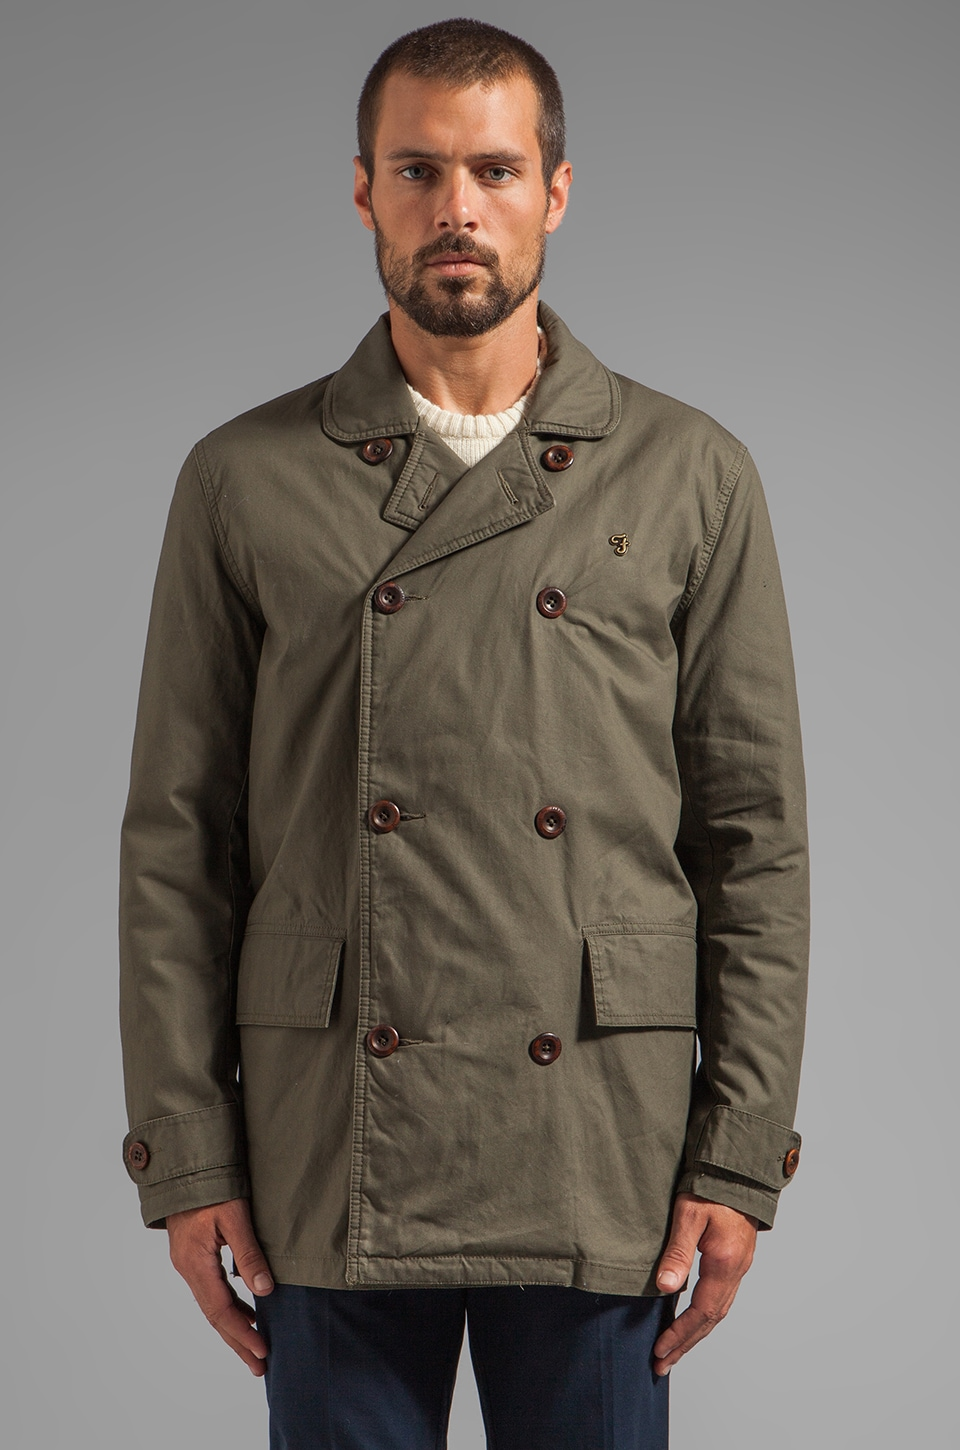 FARAH VINTAGE 1920 Crampton Deck Coat in Dark Olive